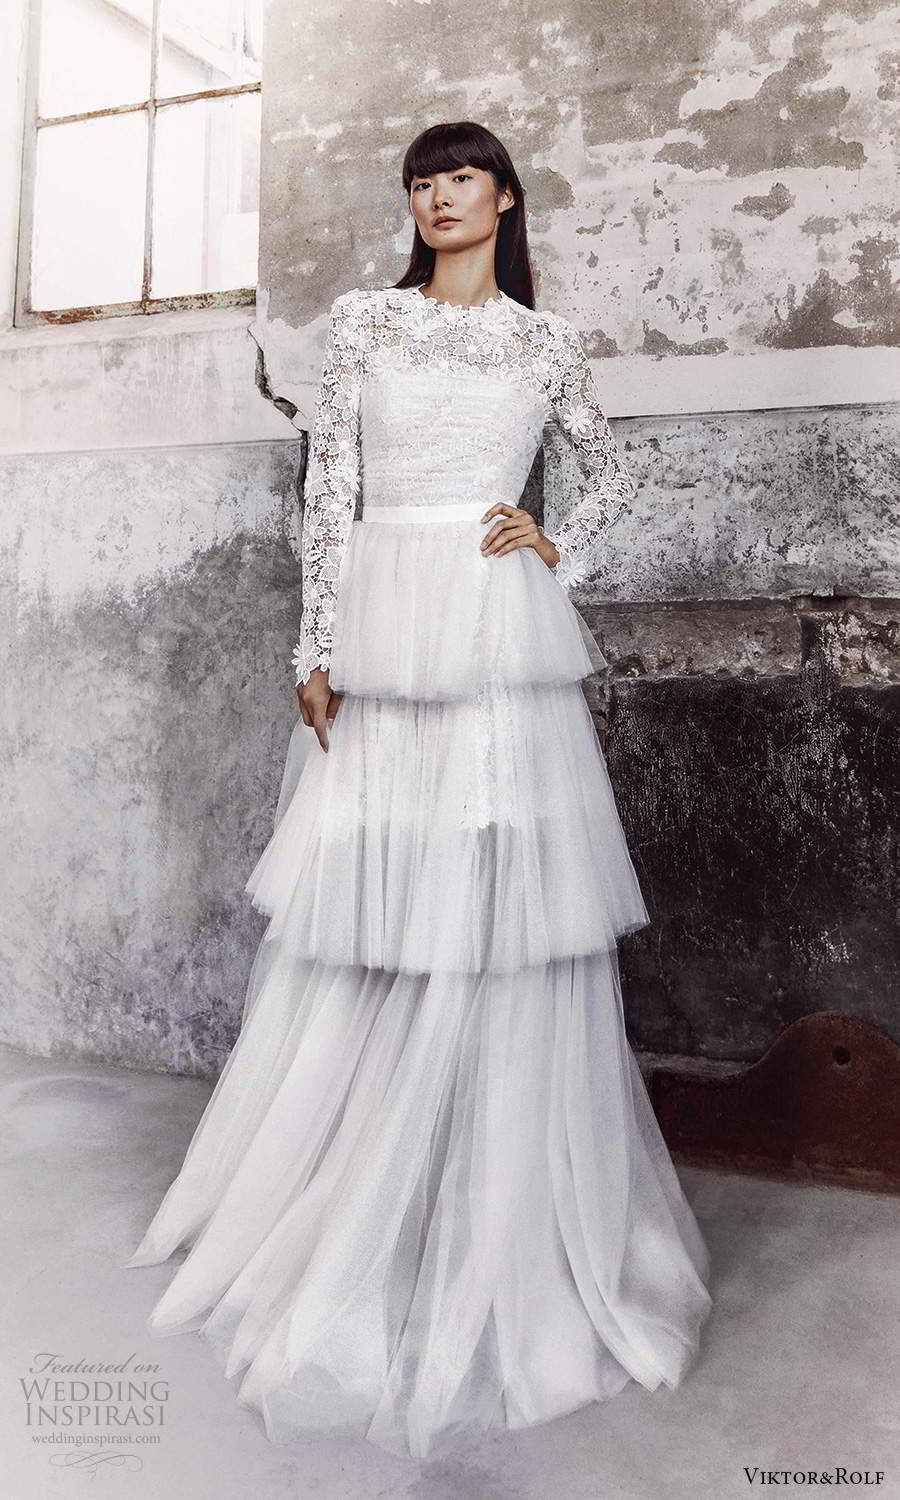 viktor and rolf fall 2021 bridal long sleeves high neckline embellished lace a line wedding dress tiered skirt (6) mv